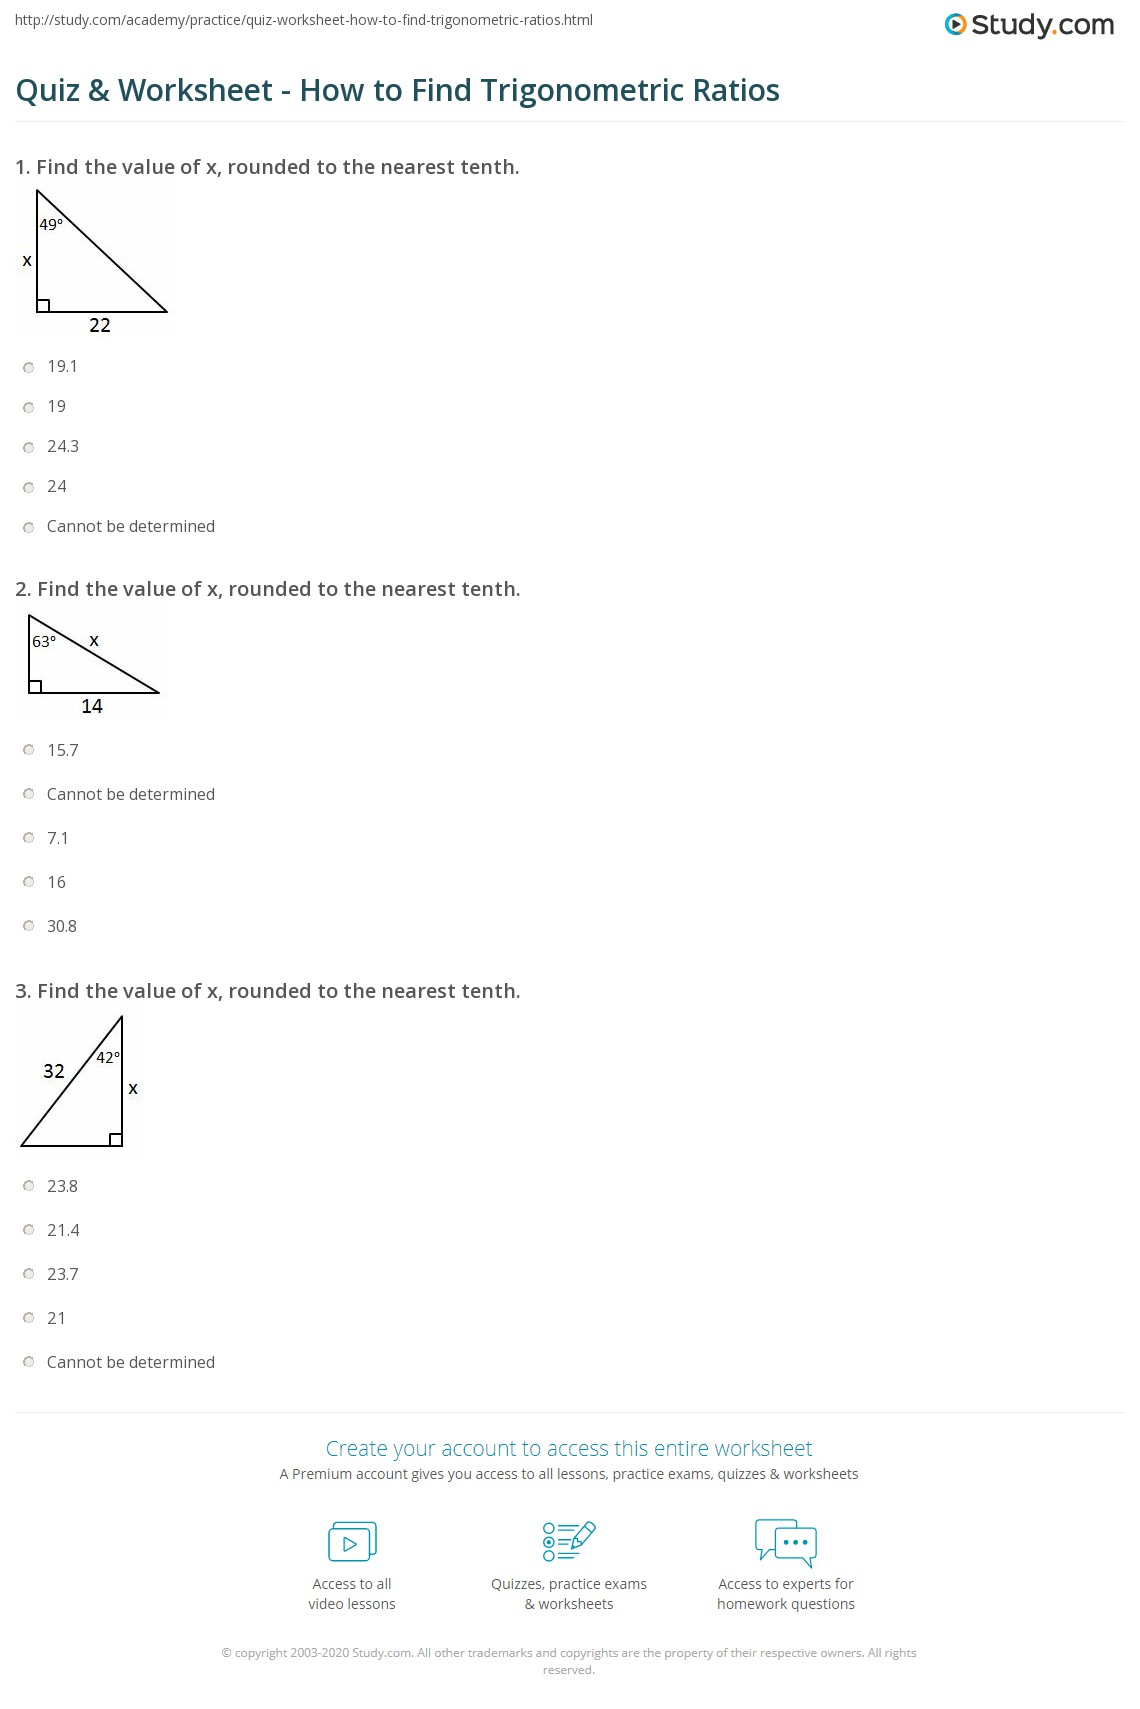 Quiz & Worksheet How to Find Trigonometric Ratios